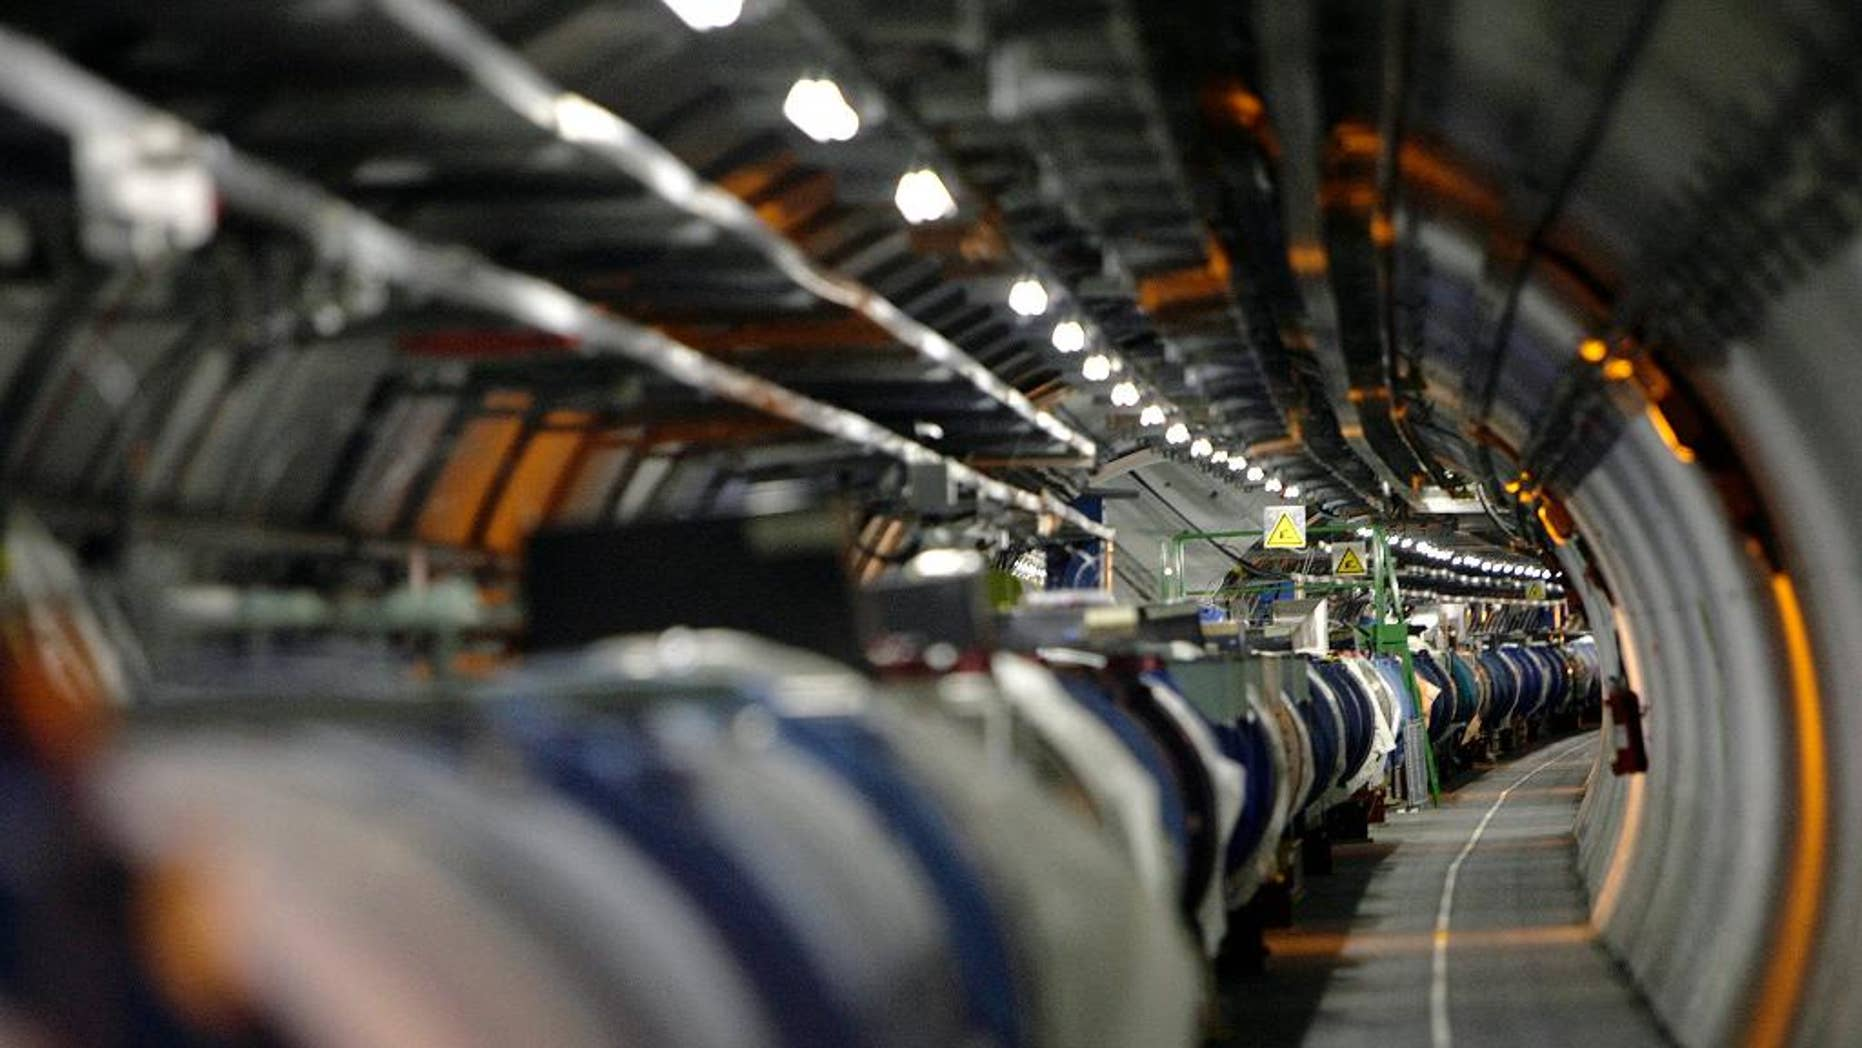 FILE - A May 31, 2007 file photo shows a view of the Large Hadron Collider in its tunnel at the European Particle Physics Laboratory, CERN, near Geneva, Switzerland. It's one of the physics world's most complex machines, and it has been immobilized — temporarily — by a weasel. Spokesman Arnaud Marsollier says the world's largest atom smasher, the LHC, at CERN, has suspended operations because a weasel invaded a transformer that helps power the machine and set off an electrical outage on Thursday night, April 28, 2016. (Martial Trezzini/Keystone via AP, File)